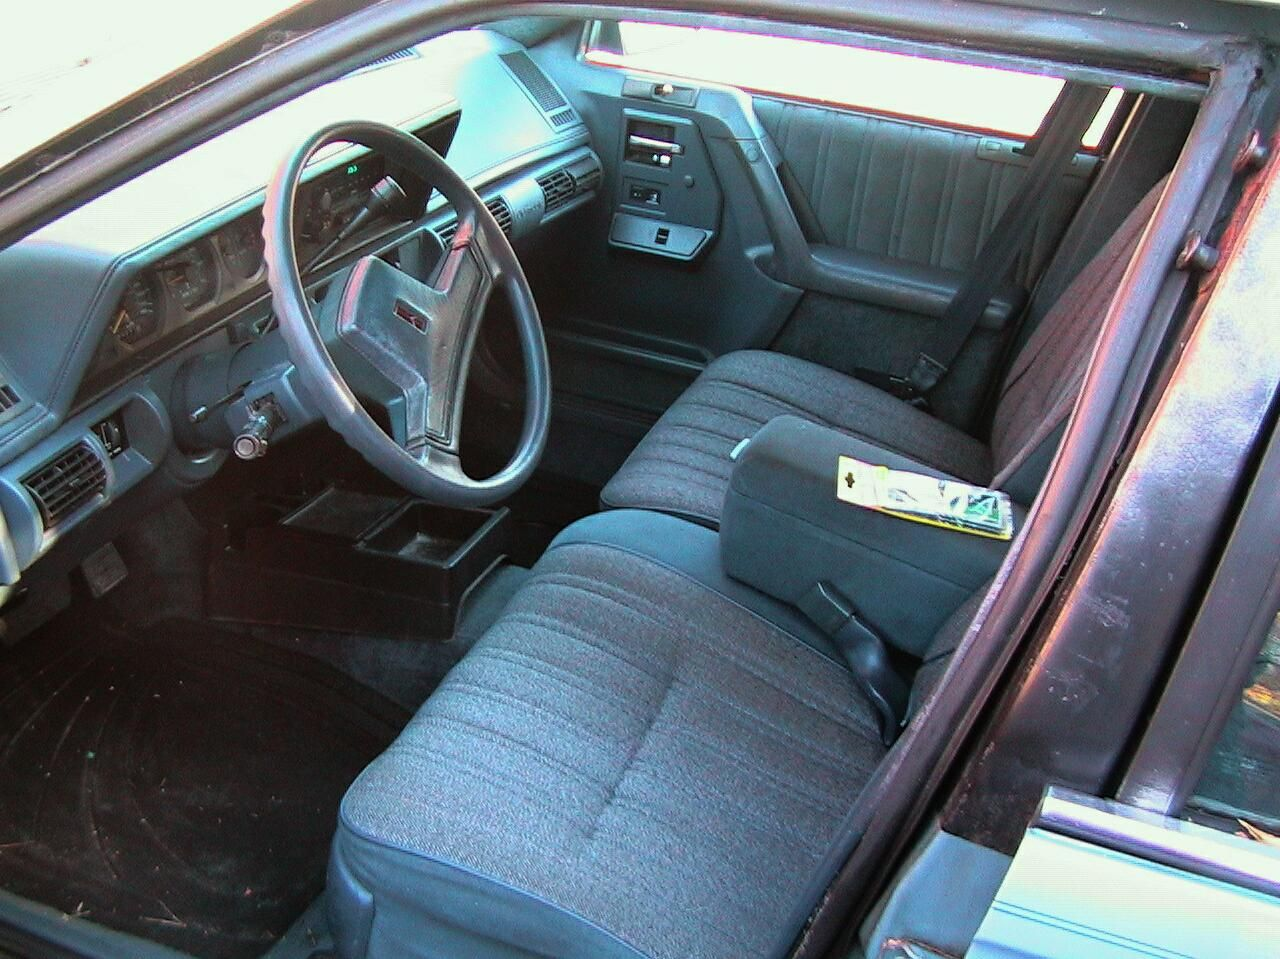 1989 oldsmobile cierra 4 dr interior picture of 1990